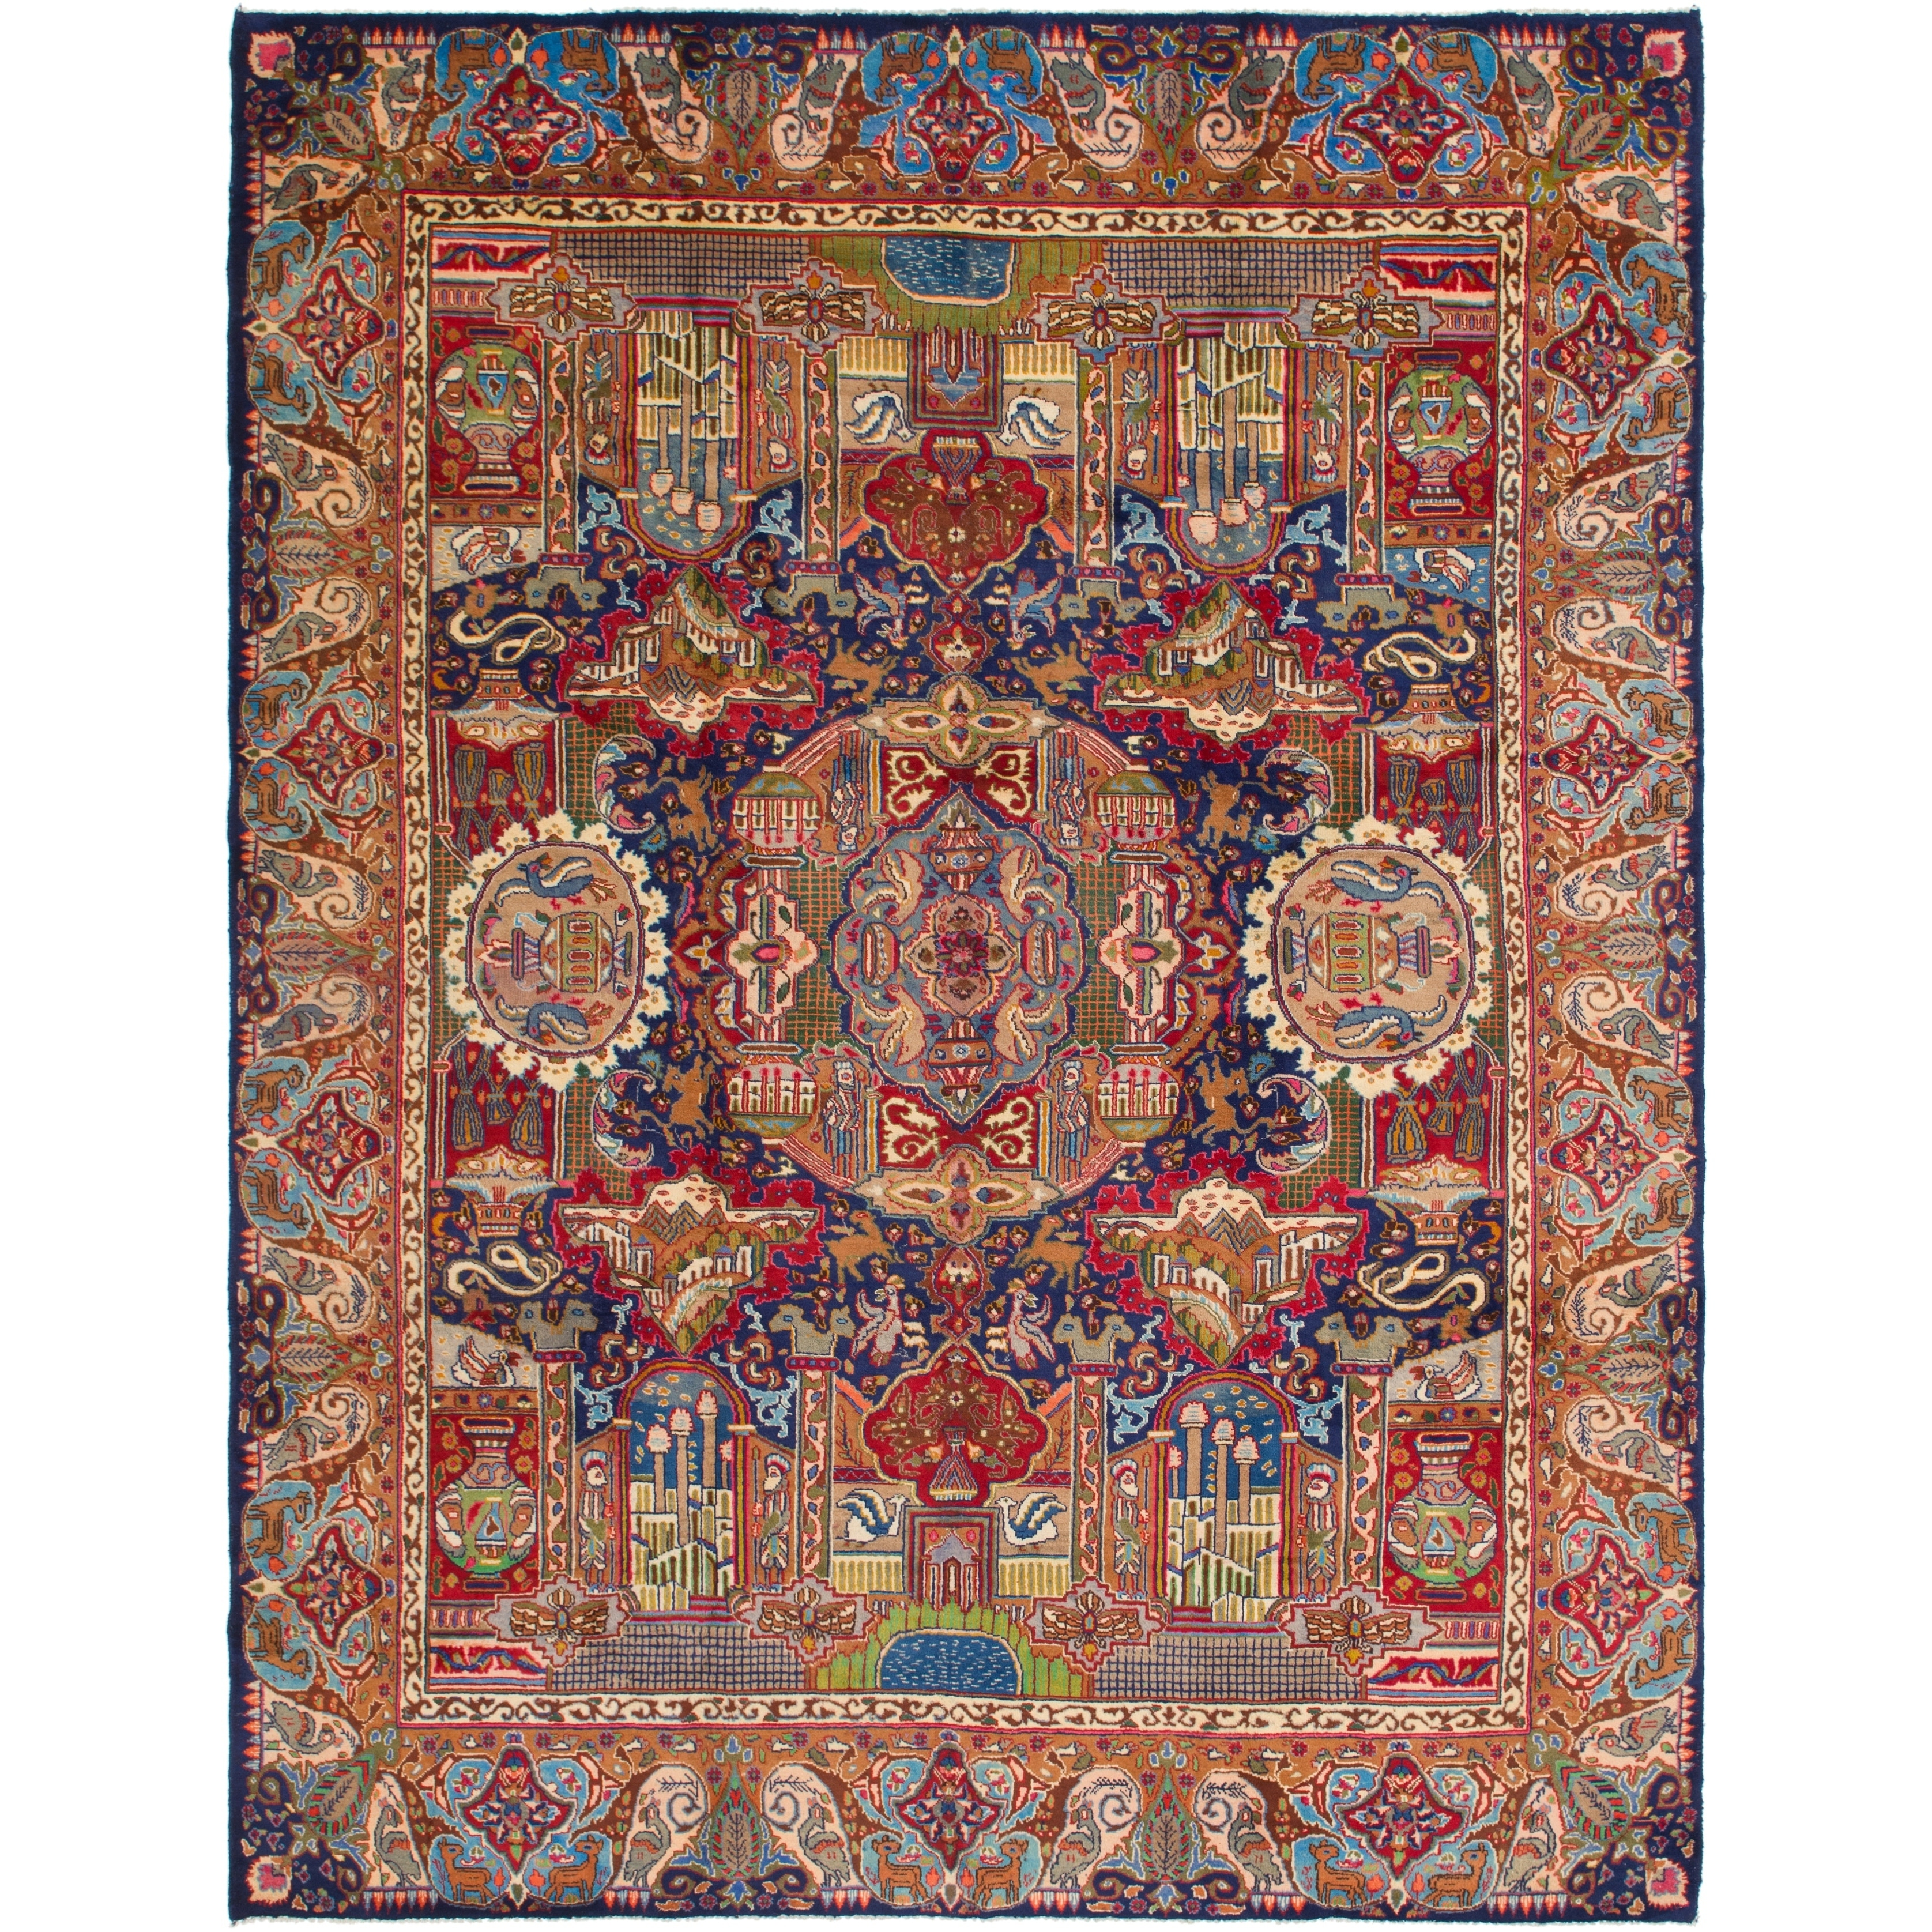 Hand Knotted Kashmar Semi Antique Wool Area Rug - 9 10 x 12 7 (Navy blue - 9 10 x 12 7)